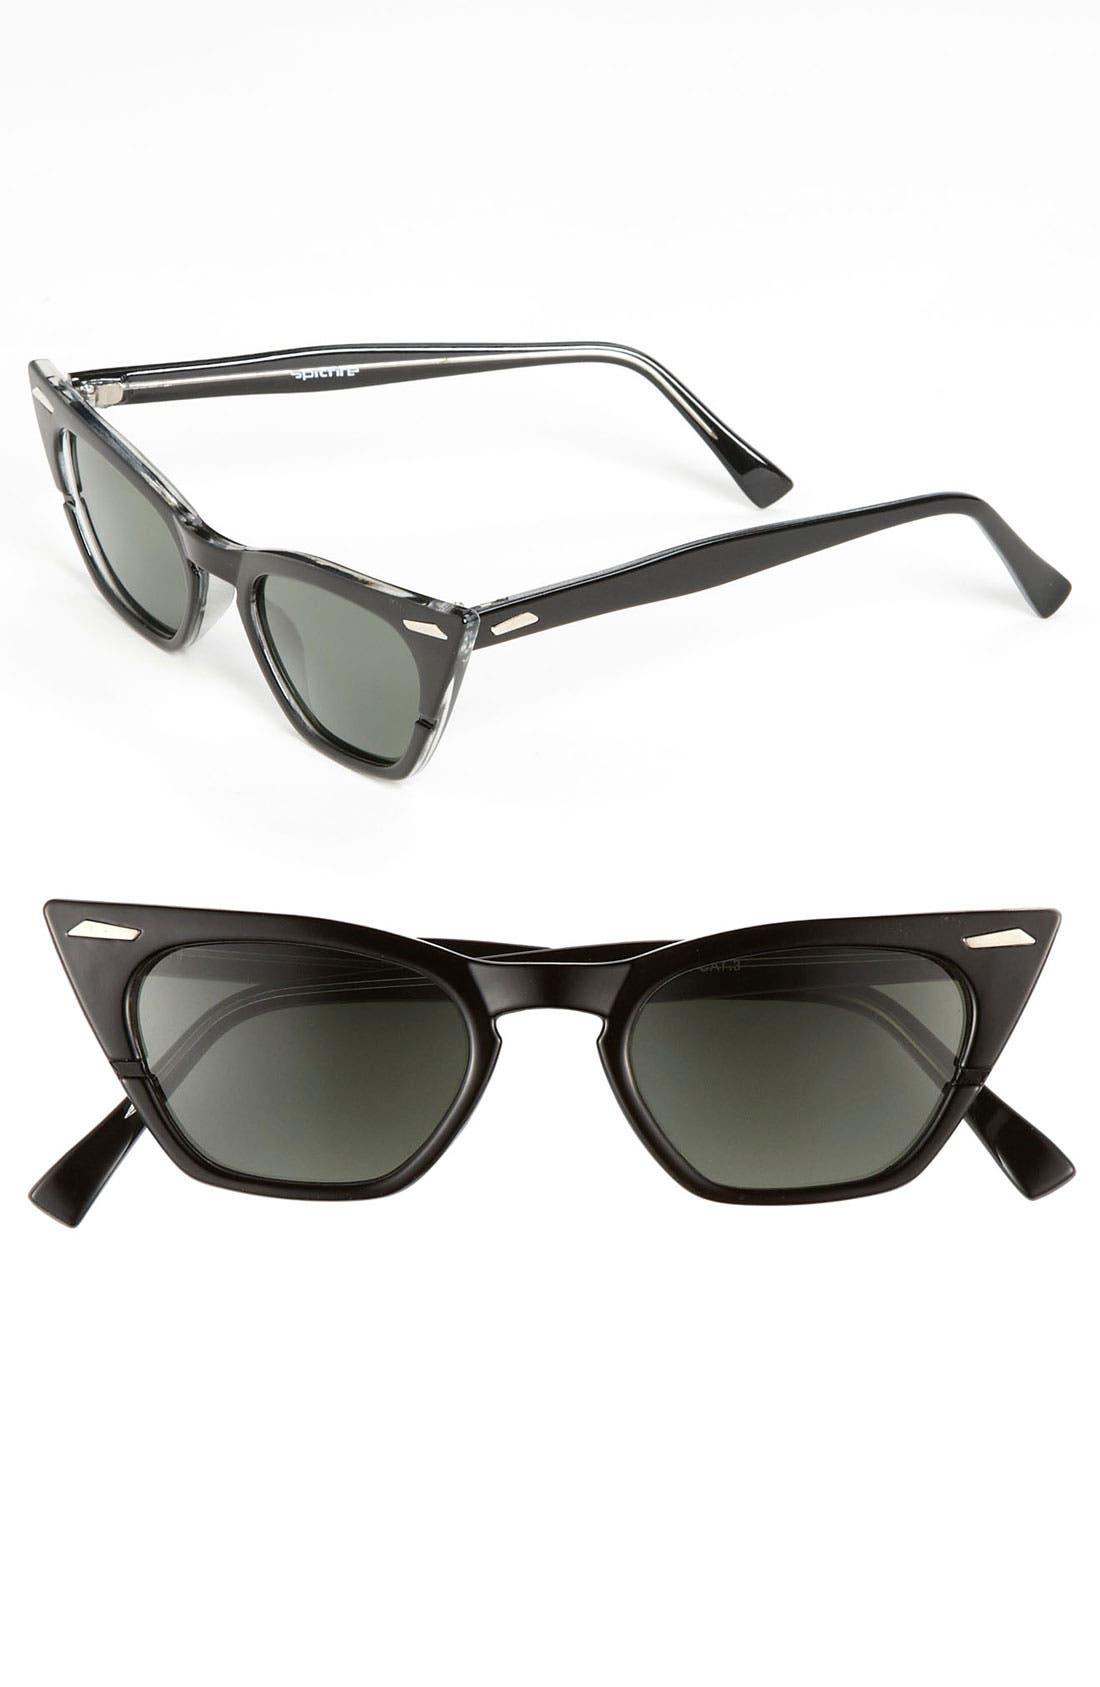 Main Image - Spitfire Cat's Eye Sunglasses